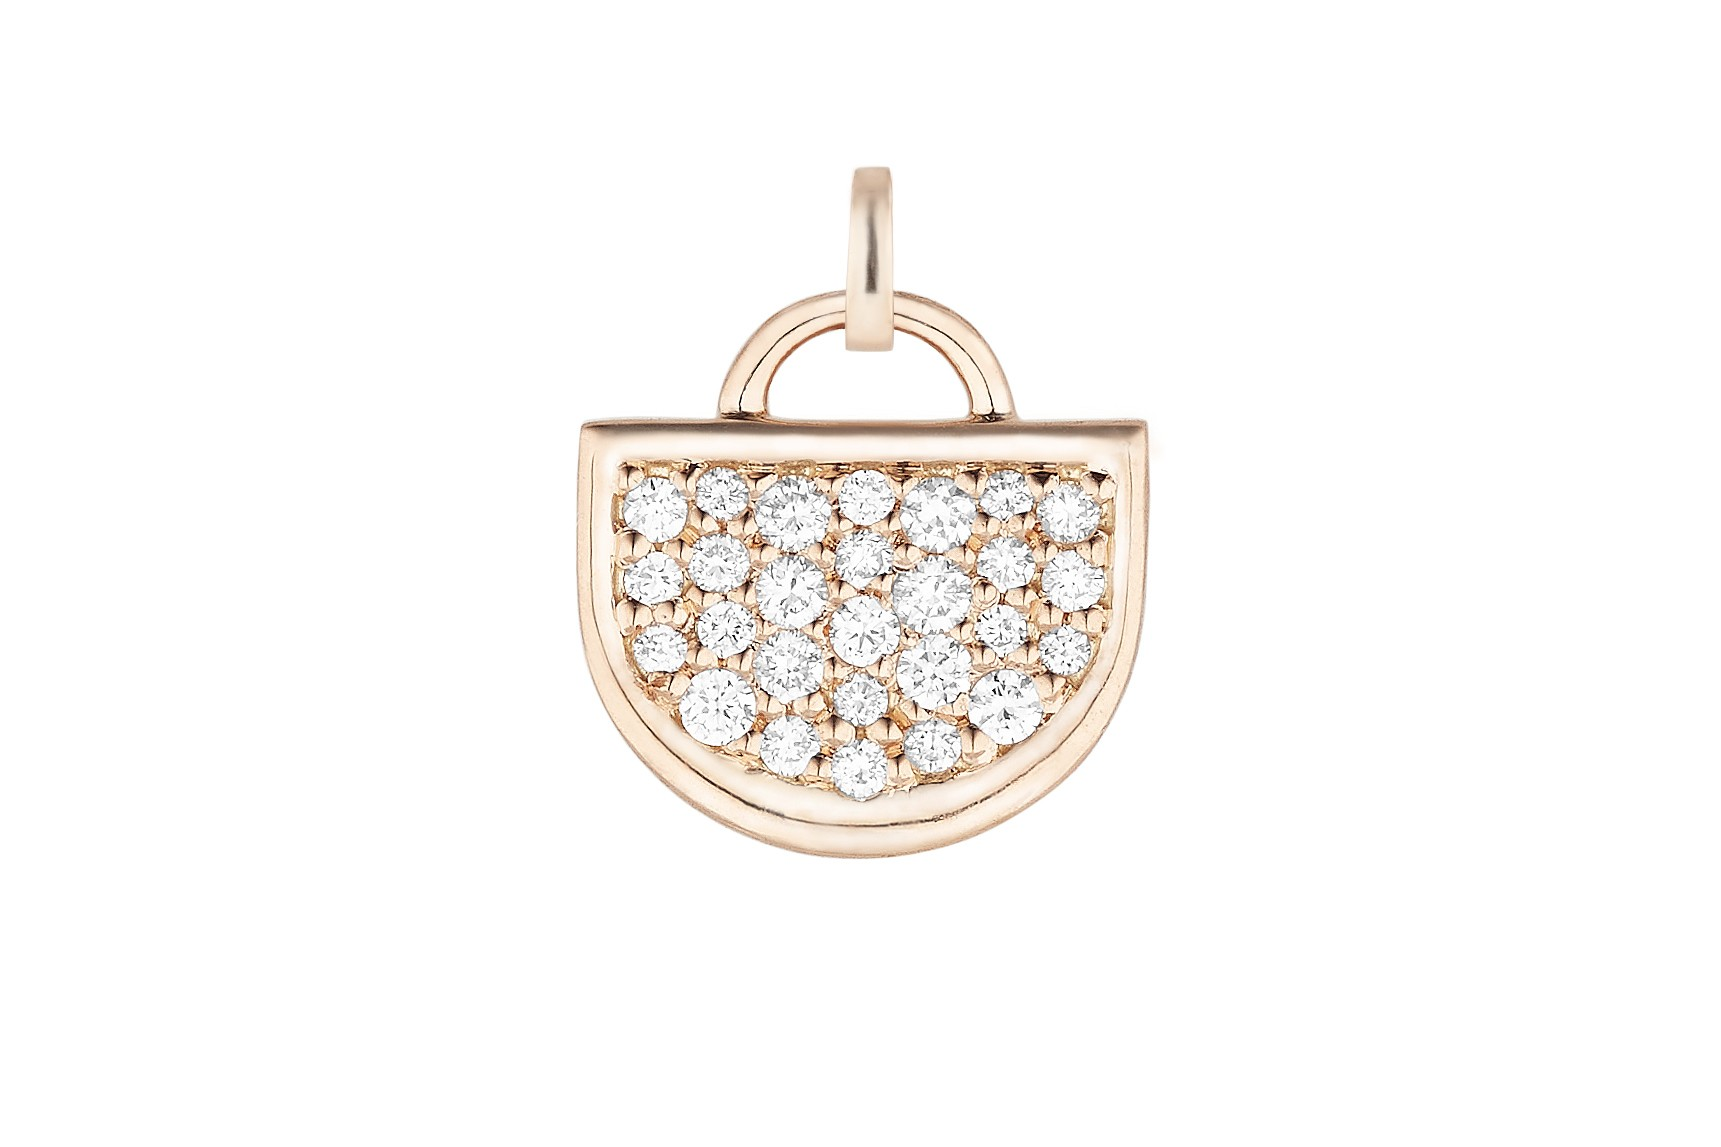 18K Rose Gold Large Monogram Single D Charm with Lab Created Diamond Pave w/Removable Bail